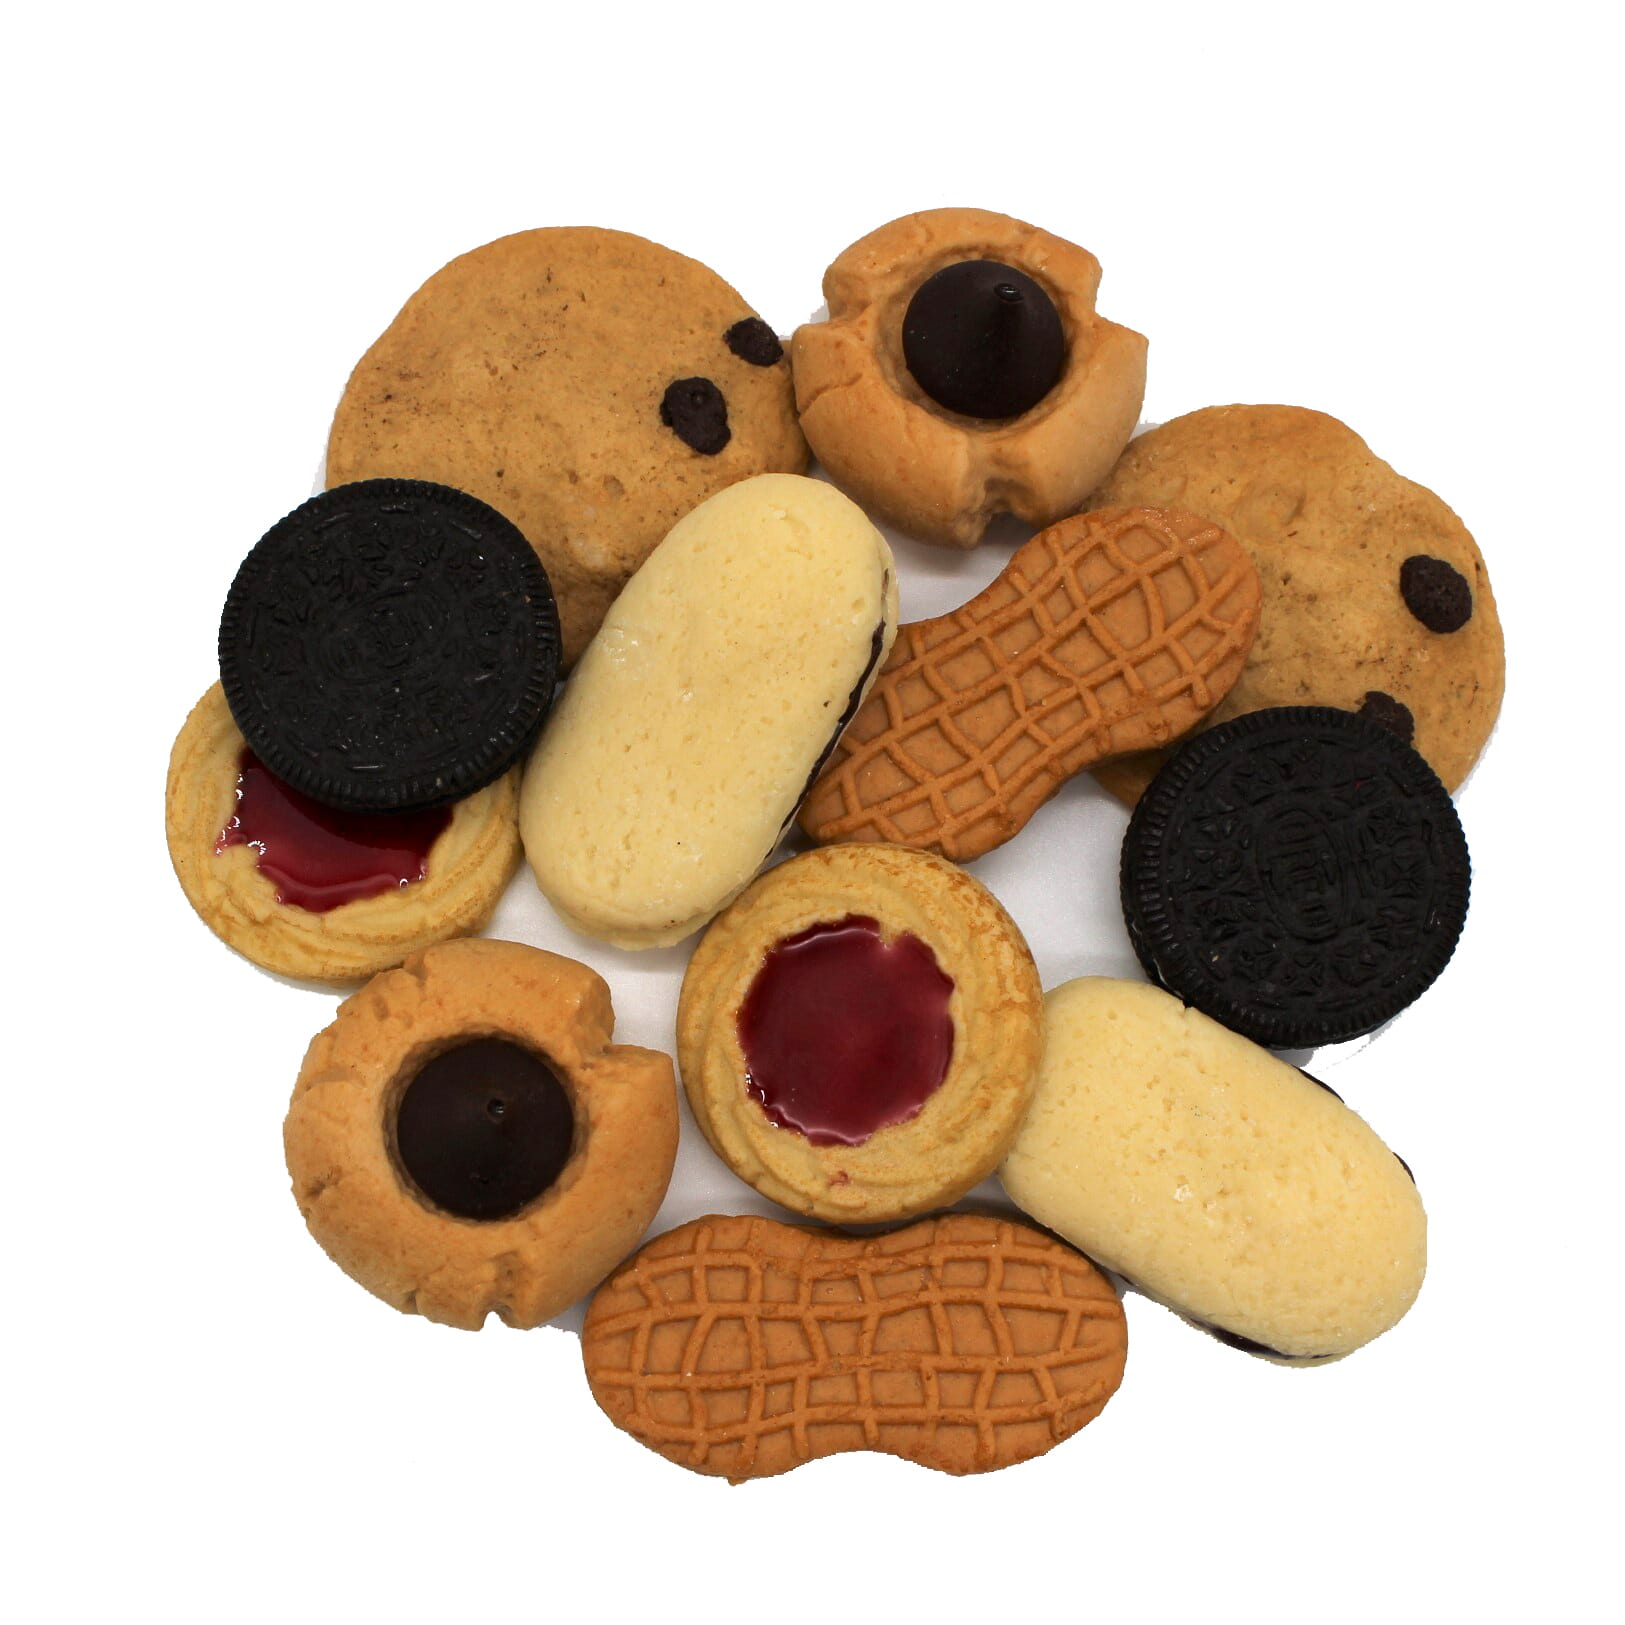 Fake Assorted Name Brand Cookies (1 dozen)